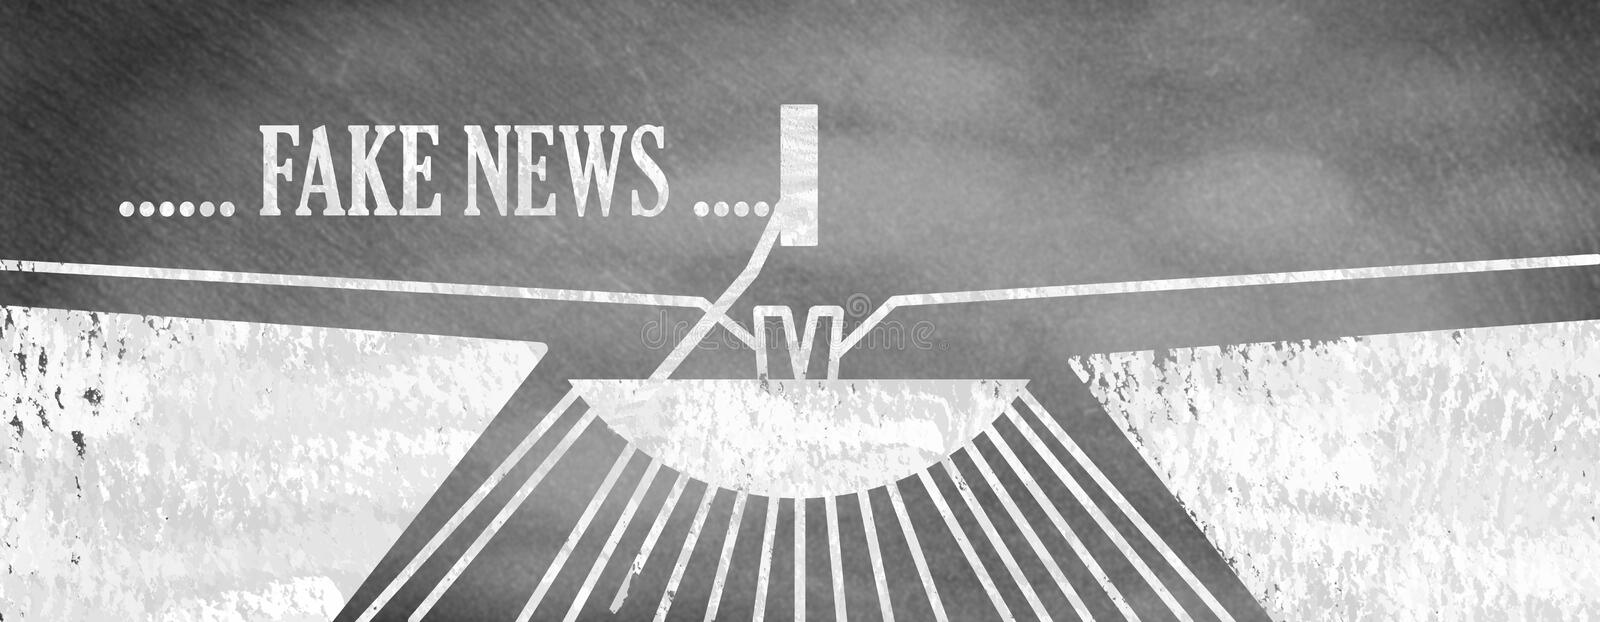 Fake news and concept of the headlines. Drawing on board royalty free illustration